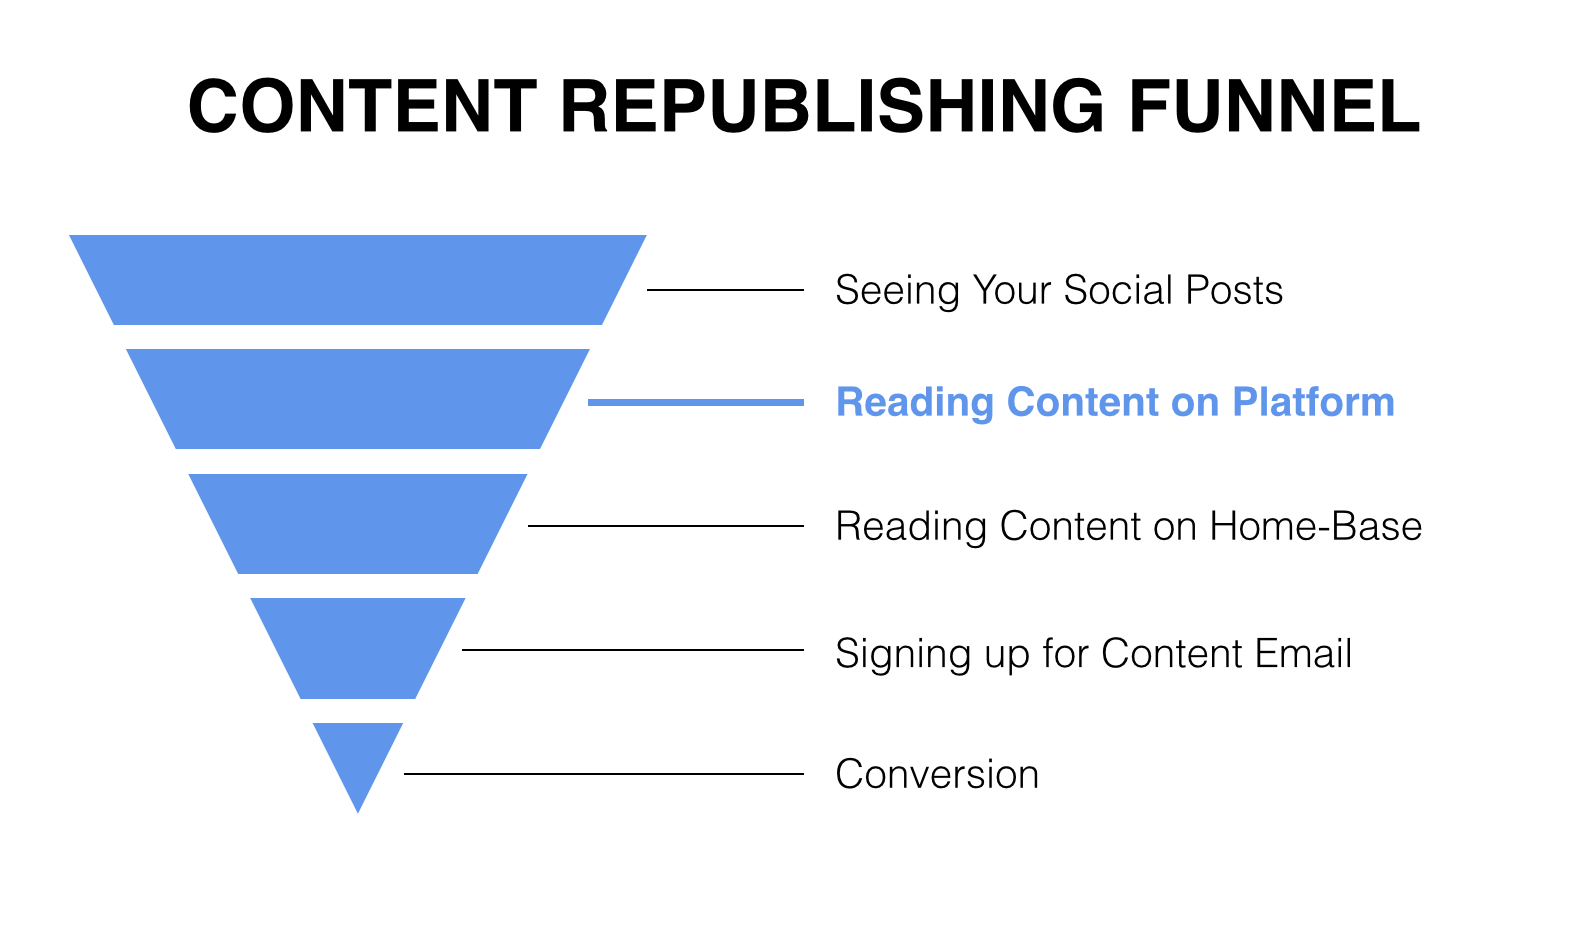 Content Republishing Funnel